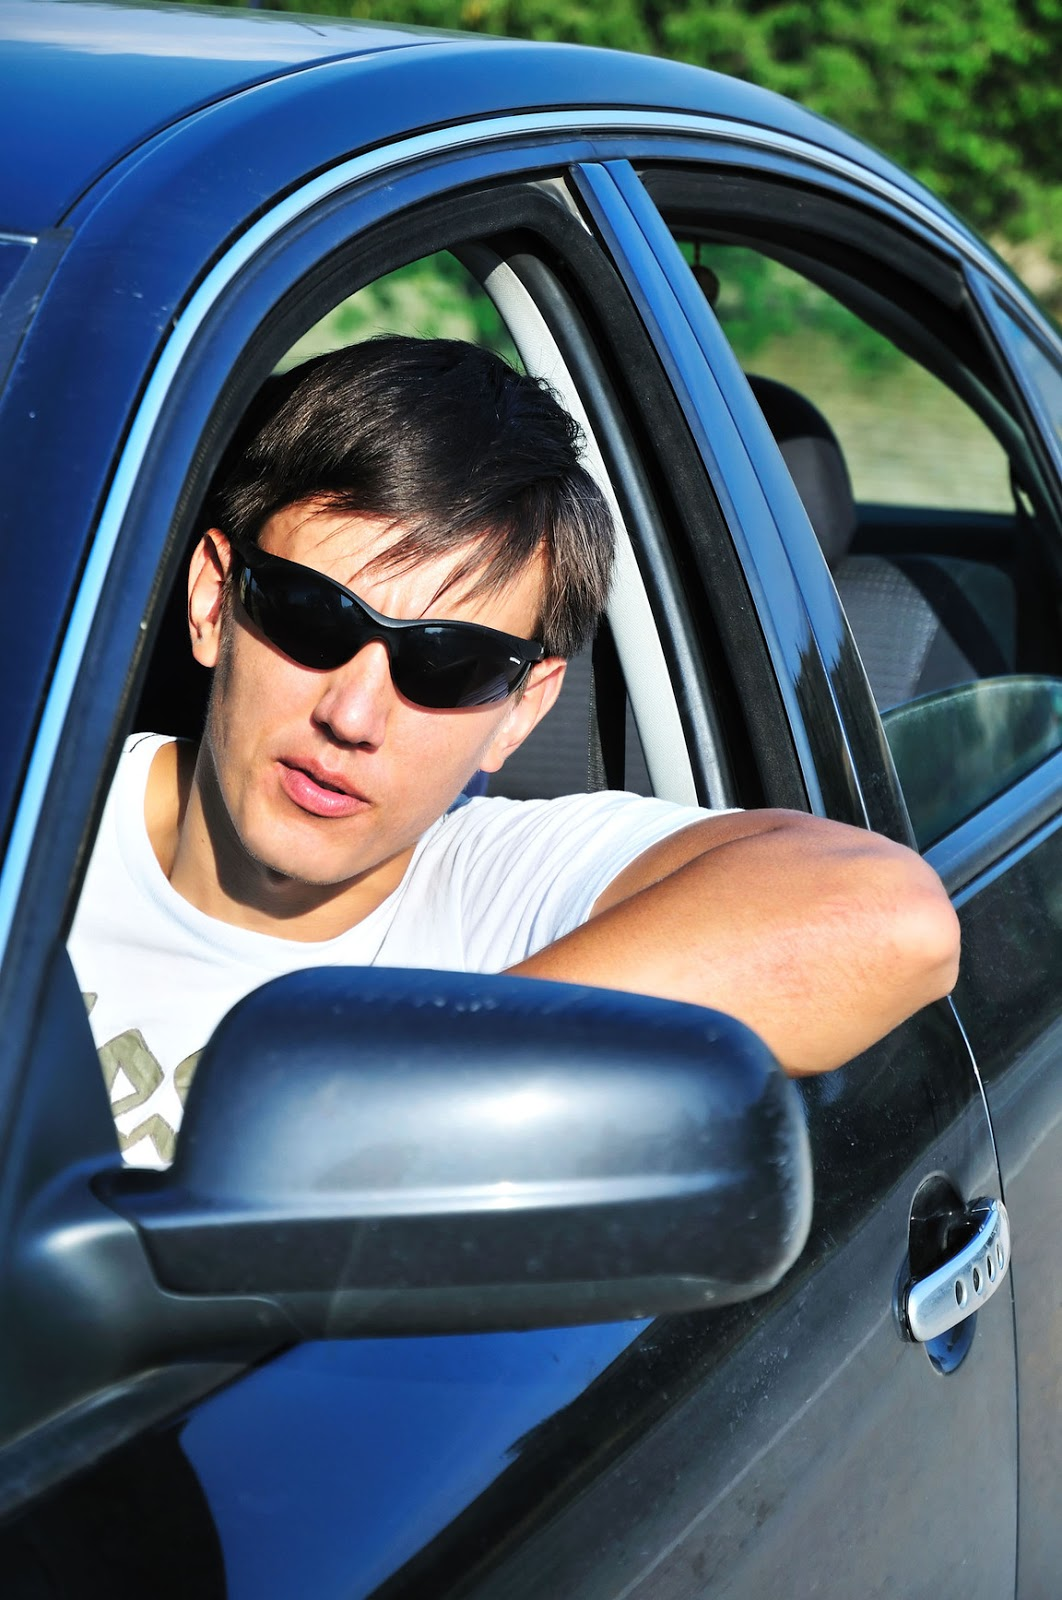 Cheapest Car Insurance For Teens >> Gold Video: Cheap Car Insurance for Teens